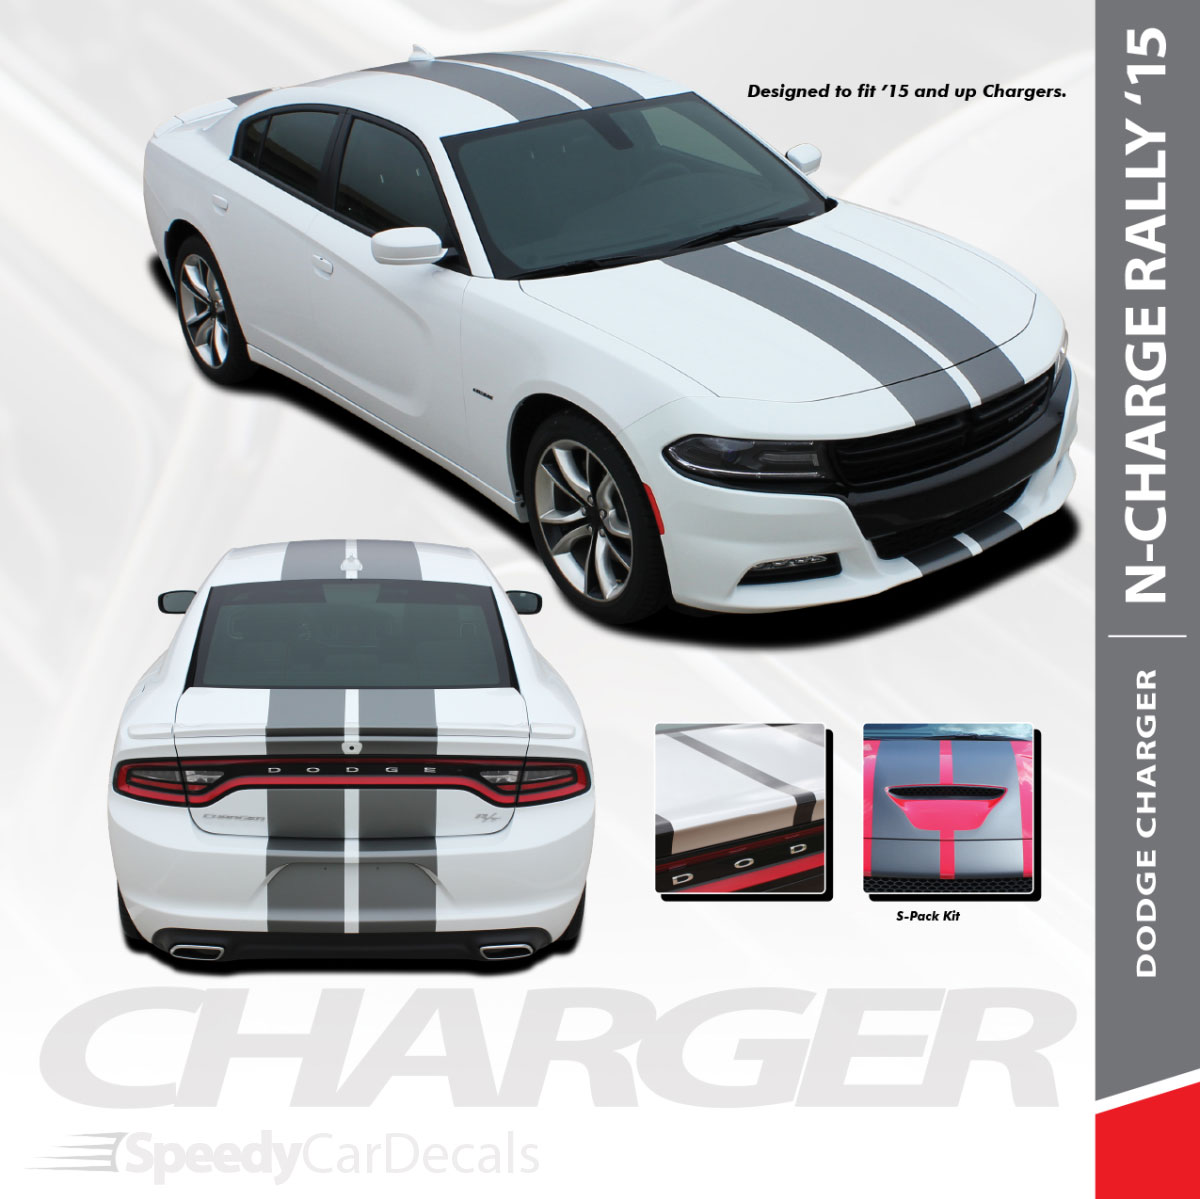 N Charge 15 Dodge Charger With Racing Stripes Decals 3m 2015 2021 Premium Auto Striping Speedycardecals Fast Car Decals Auto Decals Auto Stripes Vehicle Specific Graphics